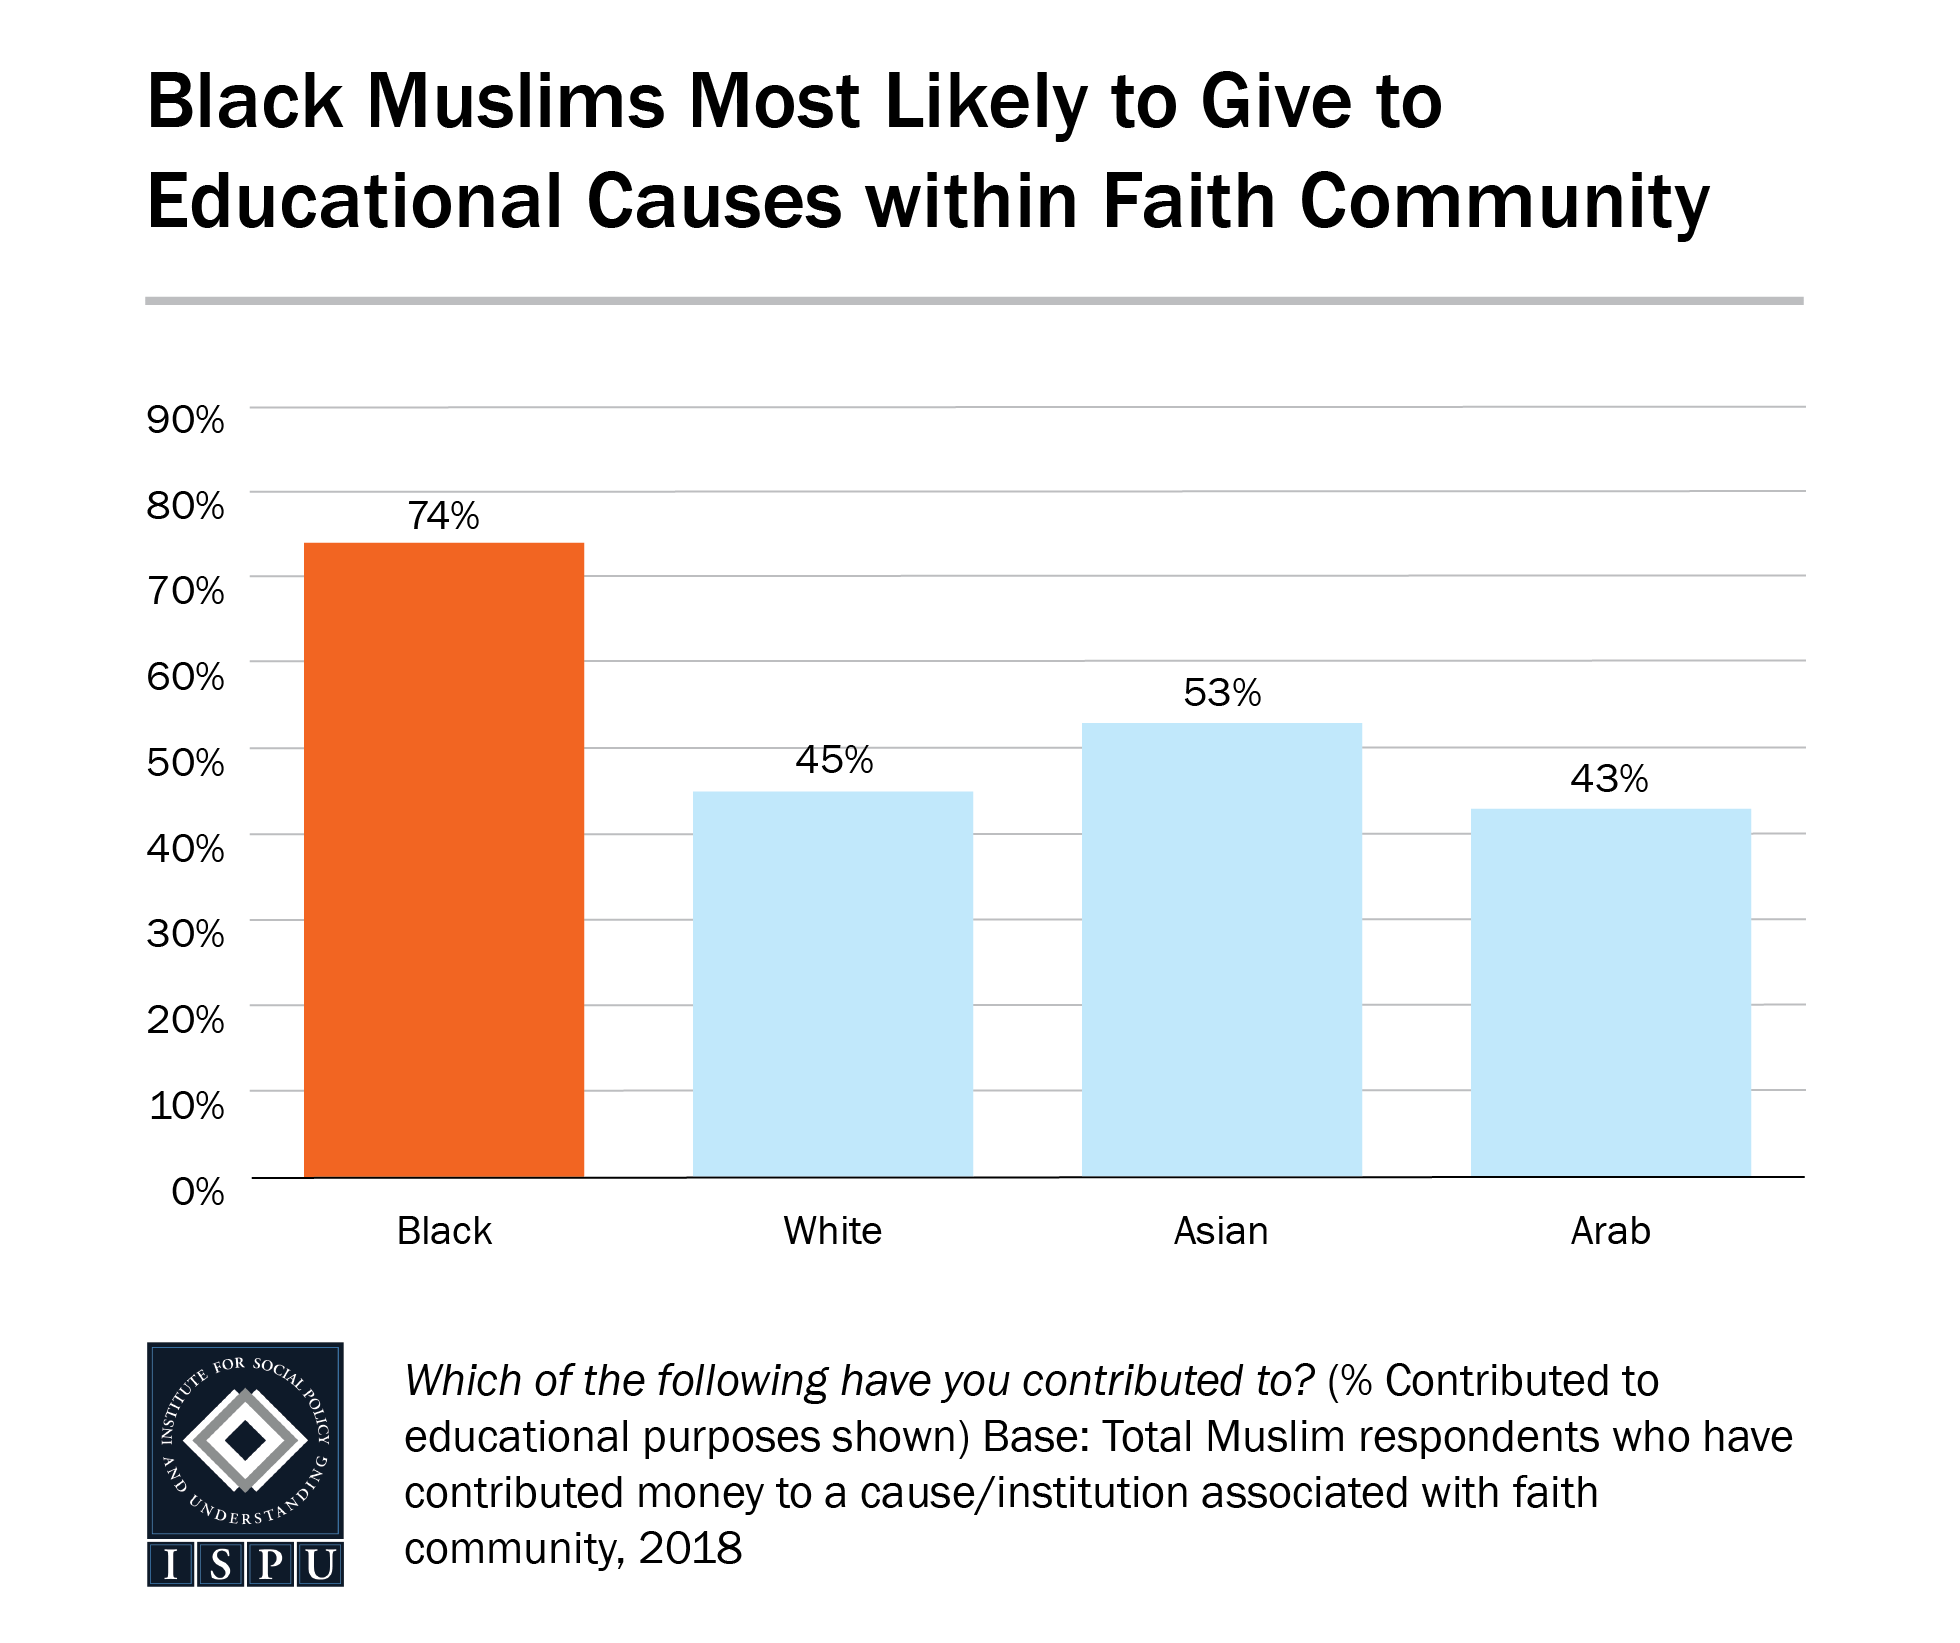 A bar graph showing that Black Muslims are the most likely racial/ethnic group among Muslims to give to education causes within their faith community